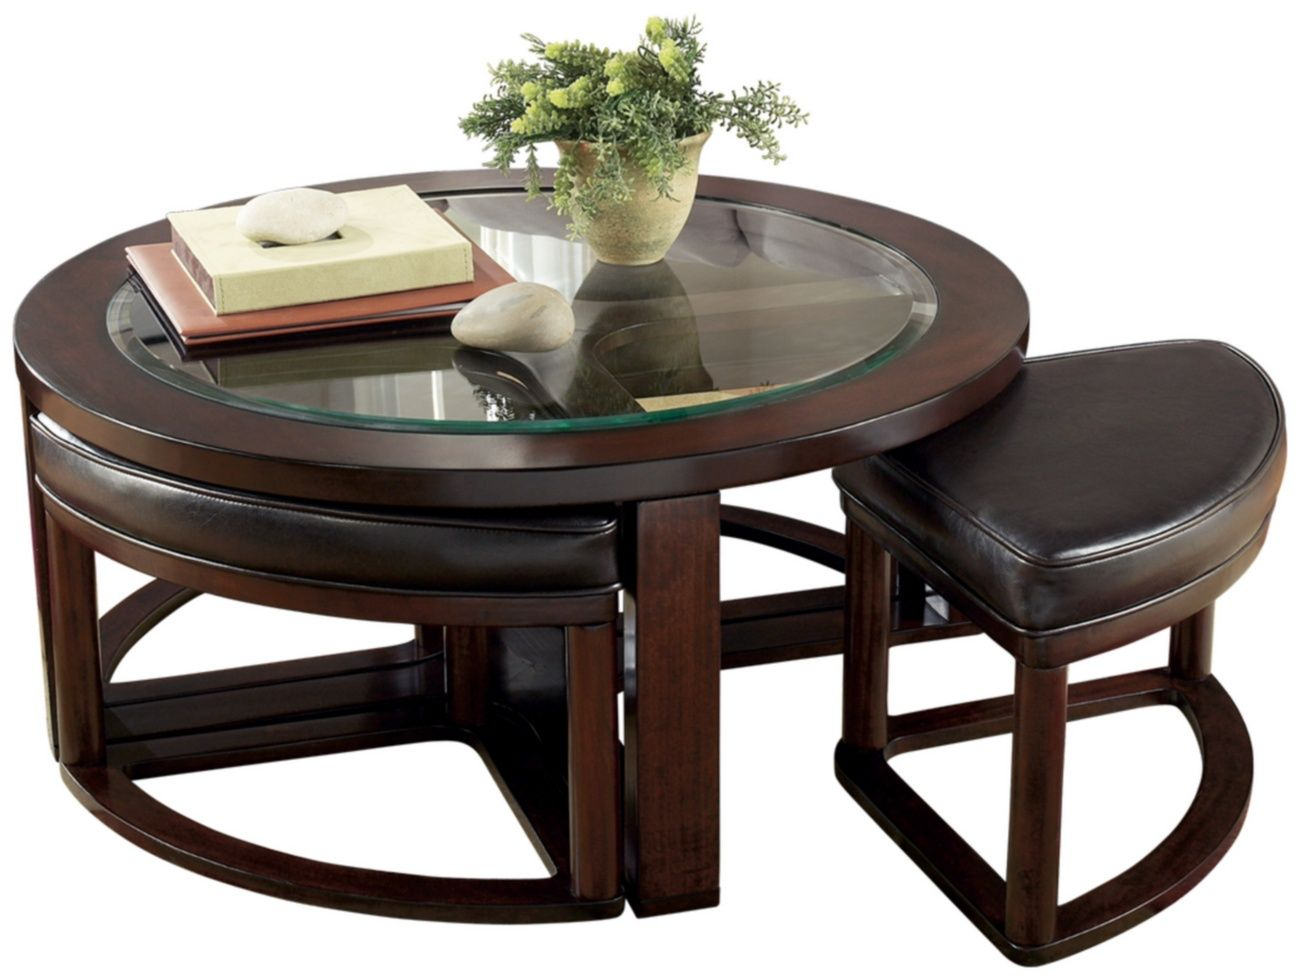 Signature Design Marion Cocktail Table W 4 Stools Ashley Furniture T477 8 Brown Coffee Table Coffee Table Round Coffee Table [ 980 x 1300 Pixel ]